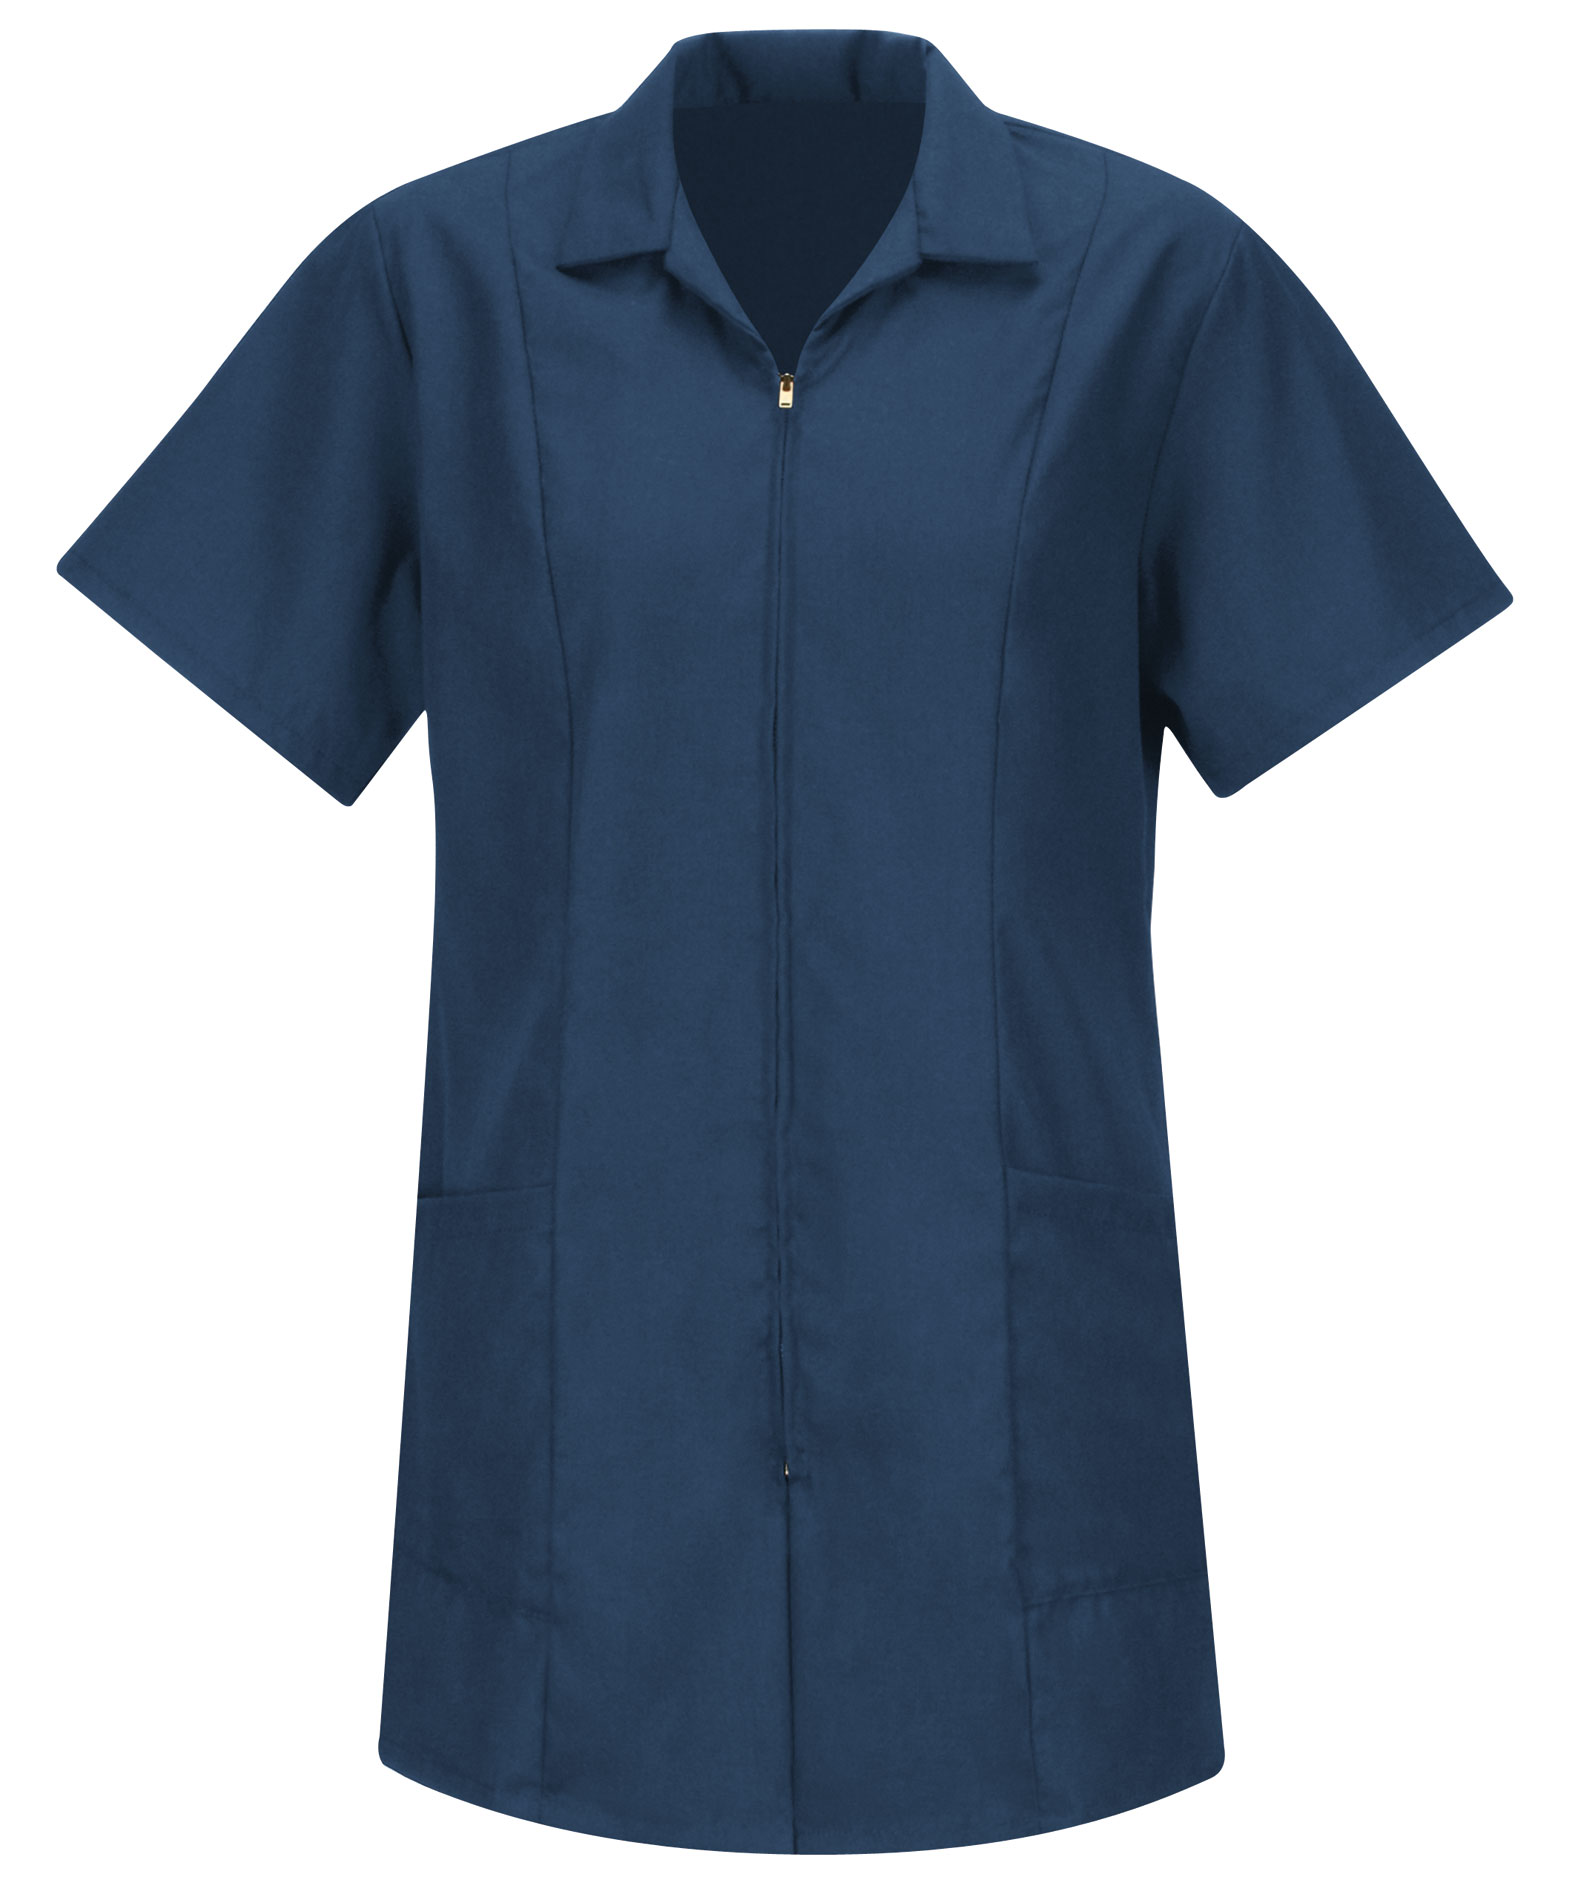 Custom Stain Resistant Shirts And Workwear